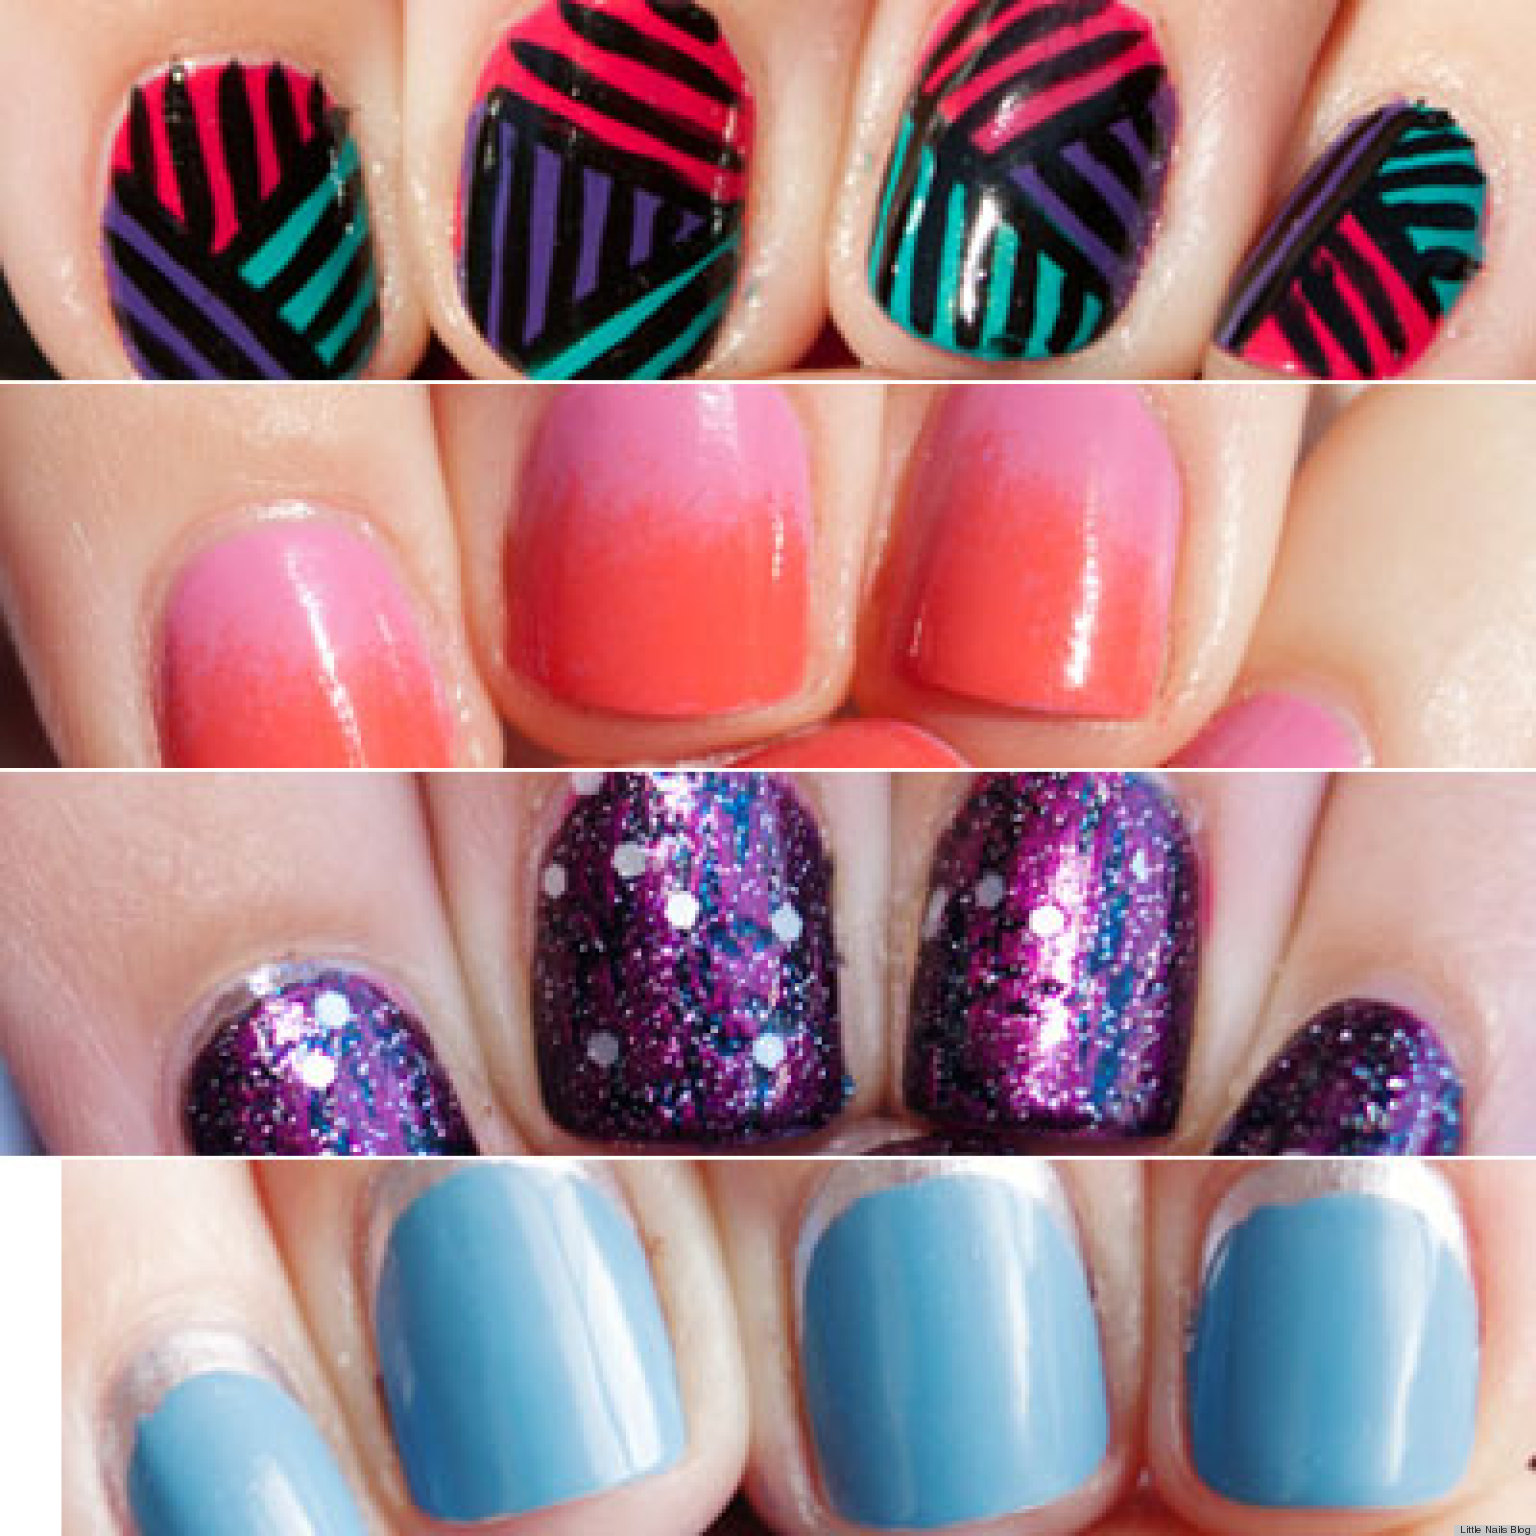 Ideas Of Nail Art: 13 Nail Art Ideas For Teeny Tiny Fingertips (PHOTOS